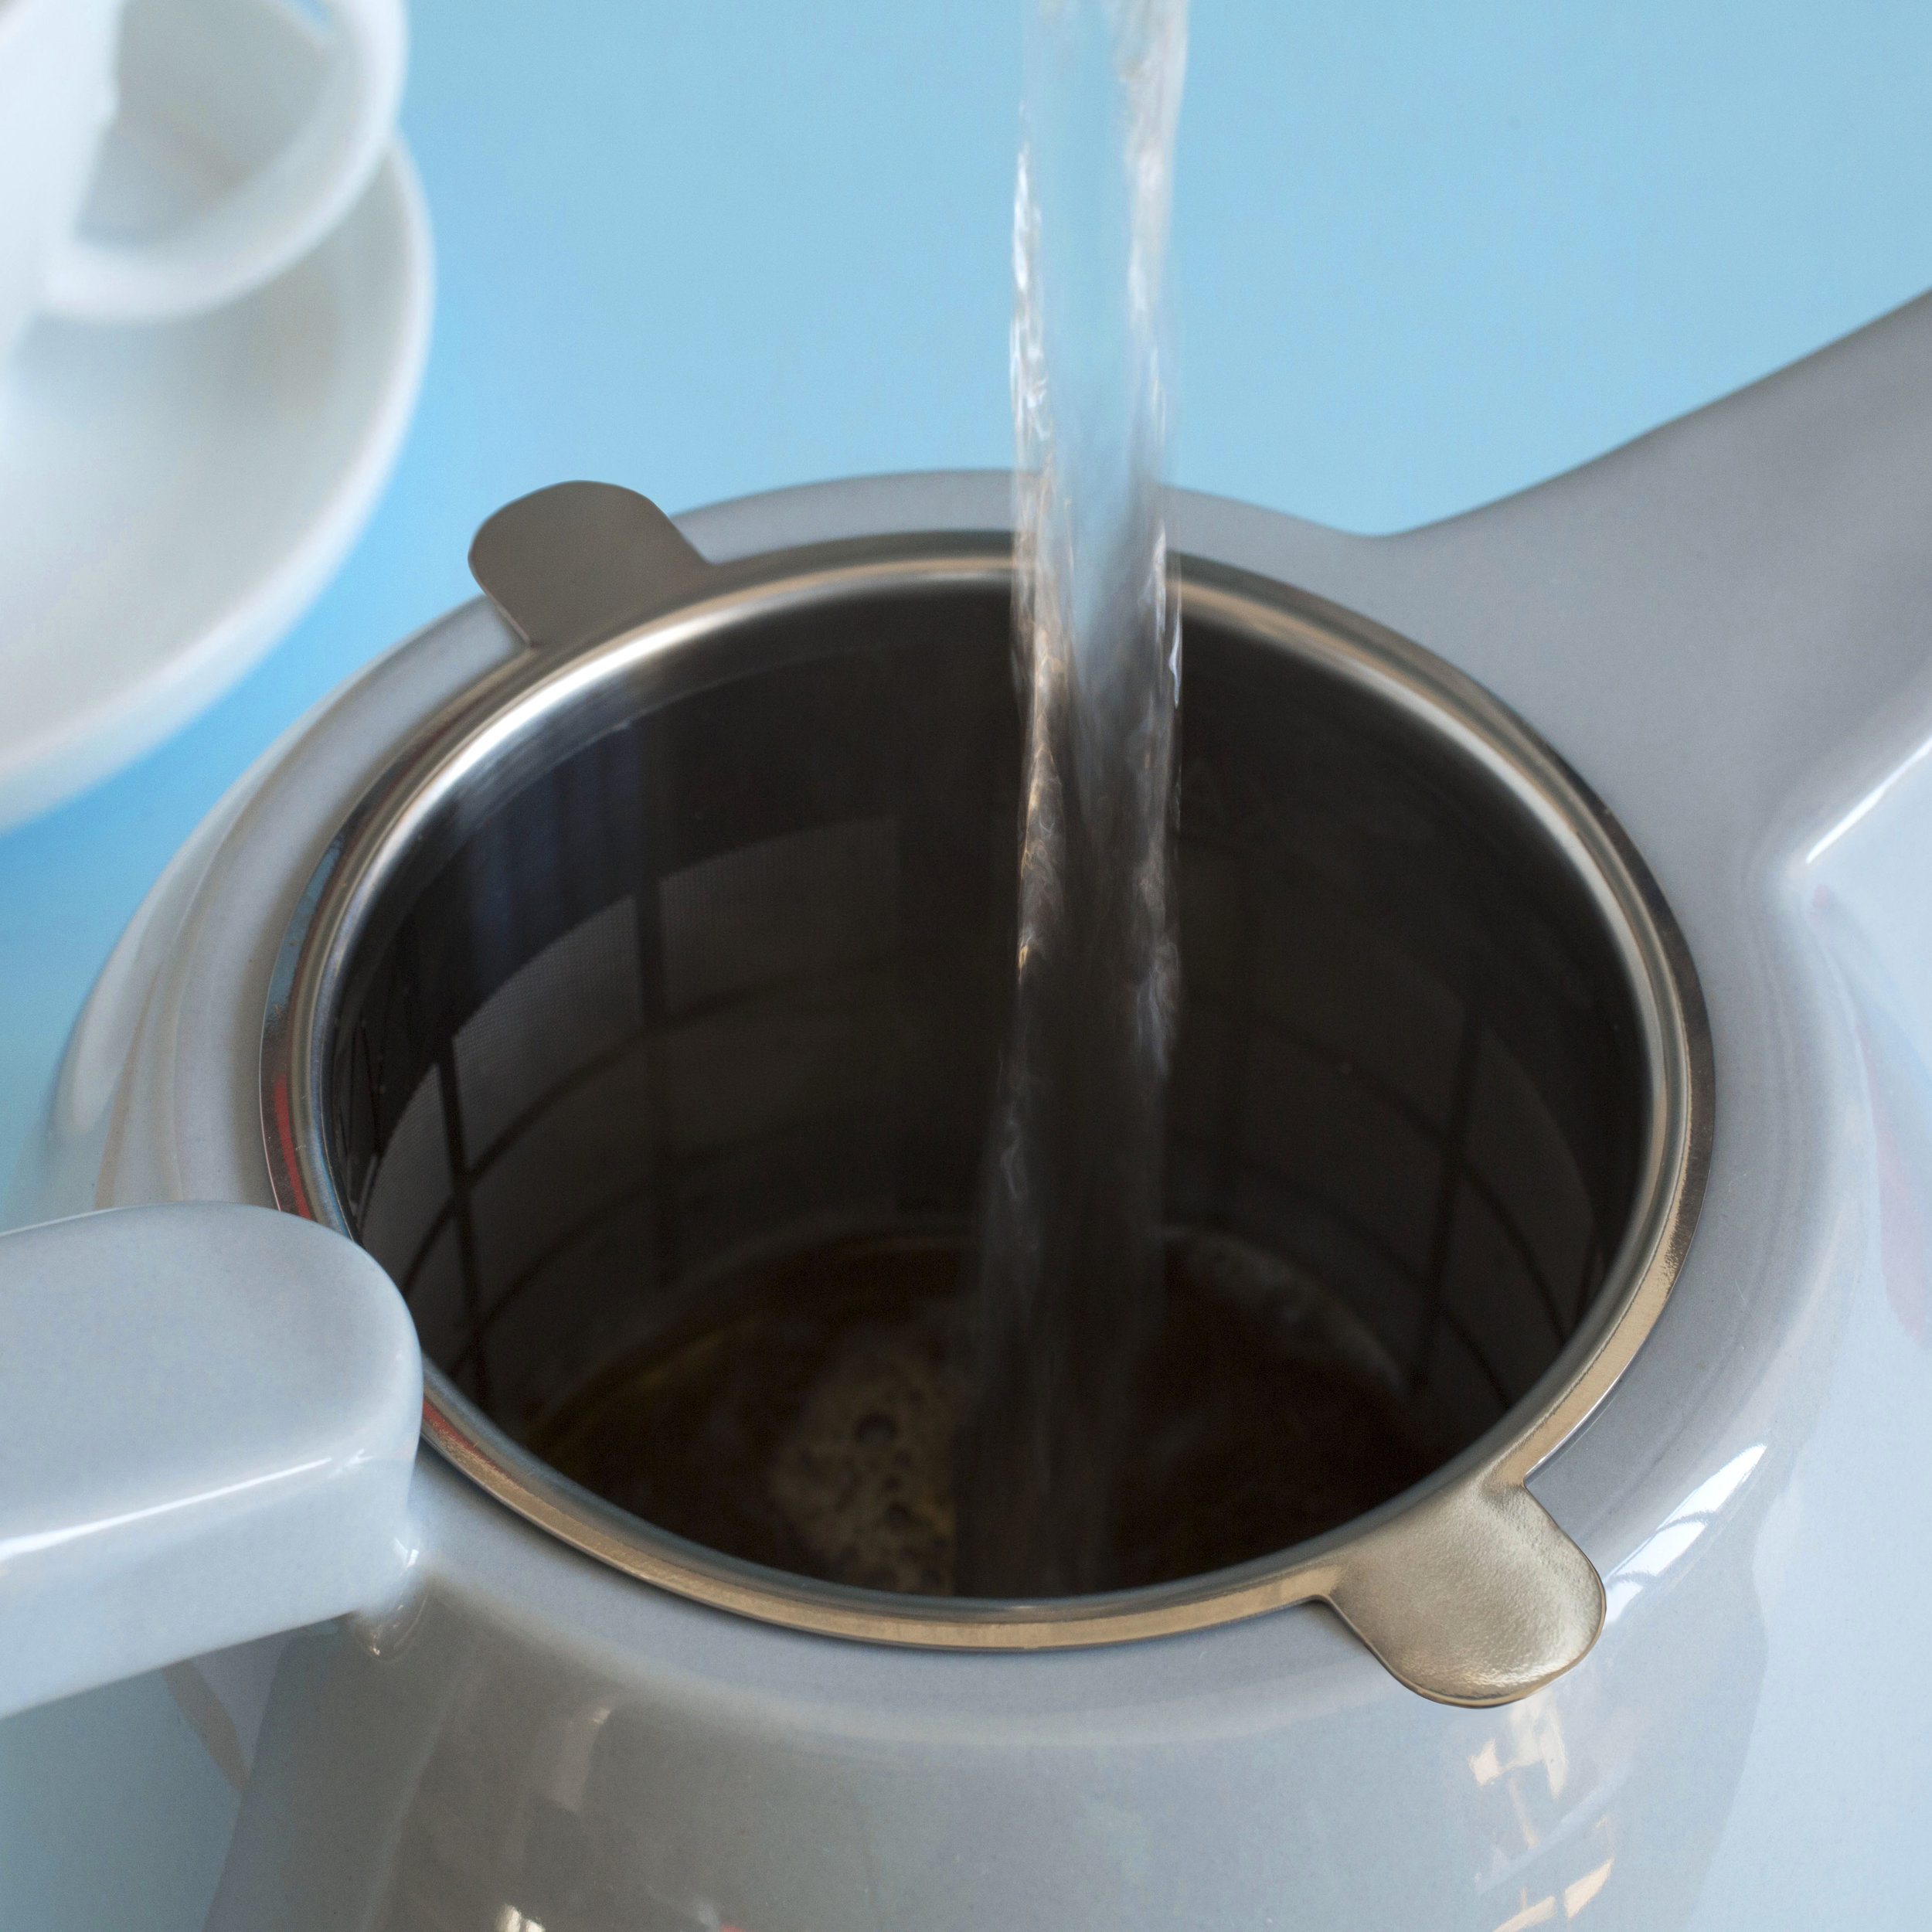 Pour over the water, making sure all the tea is covered by the water -